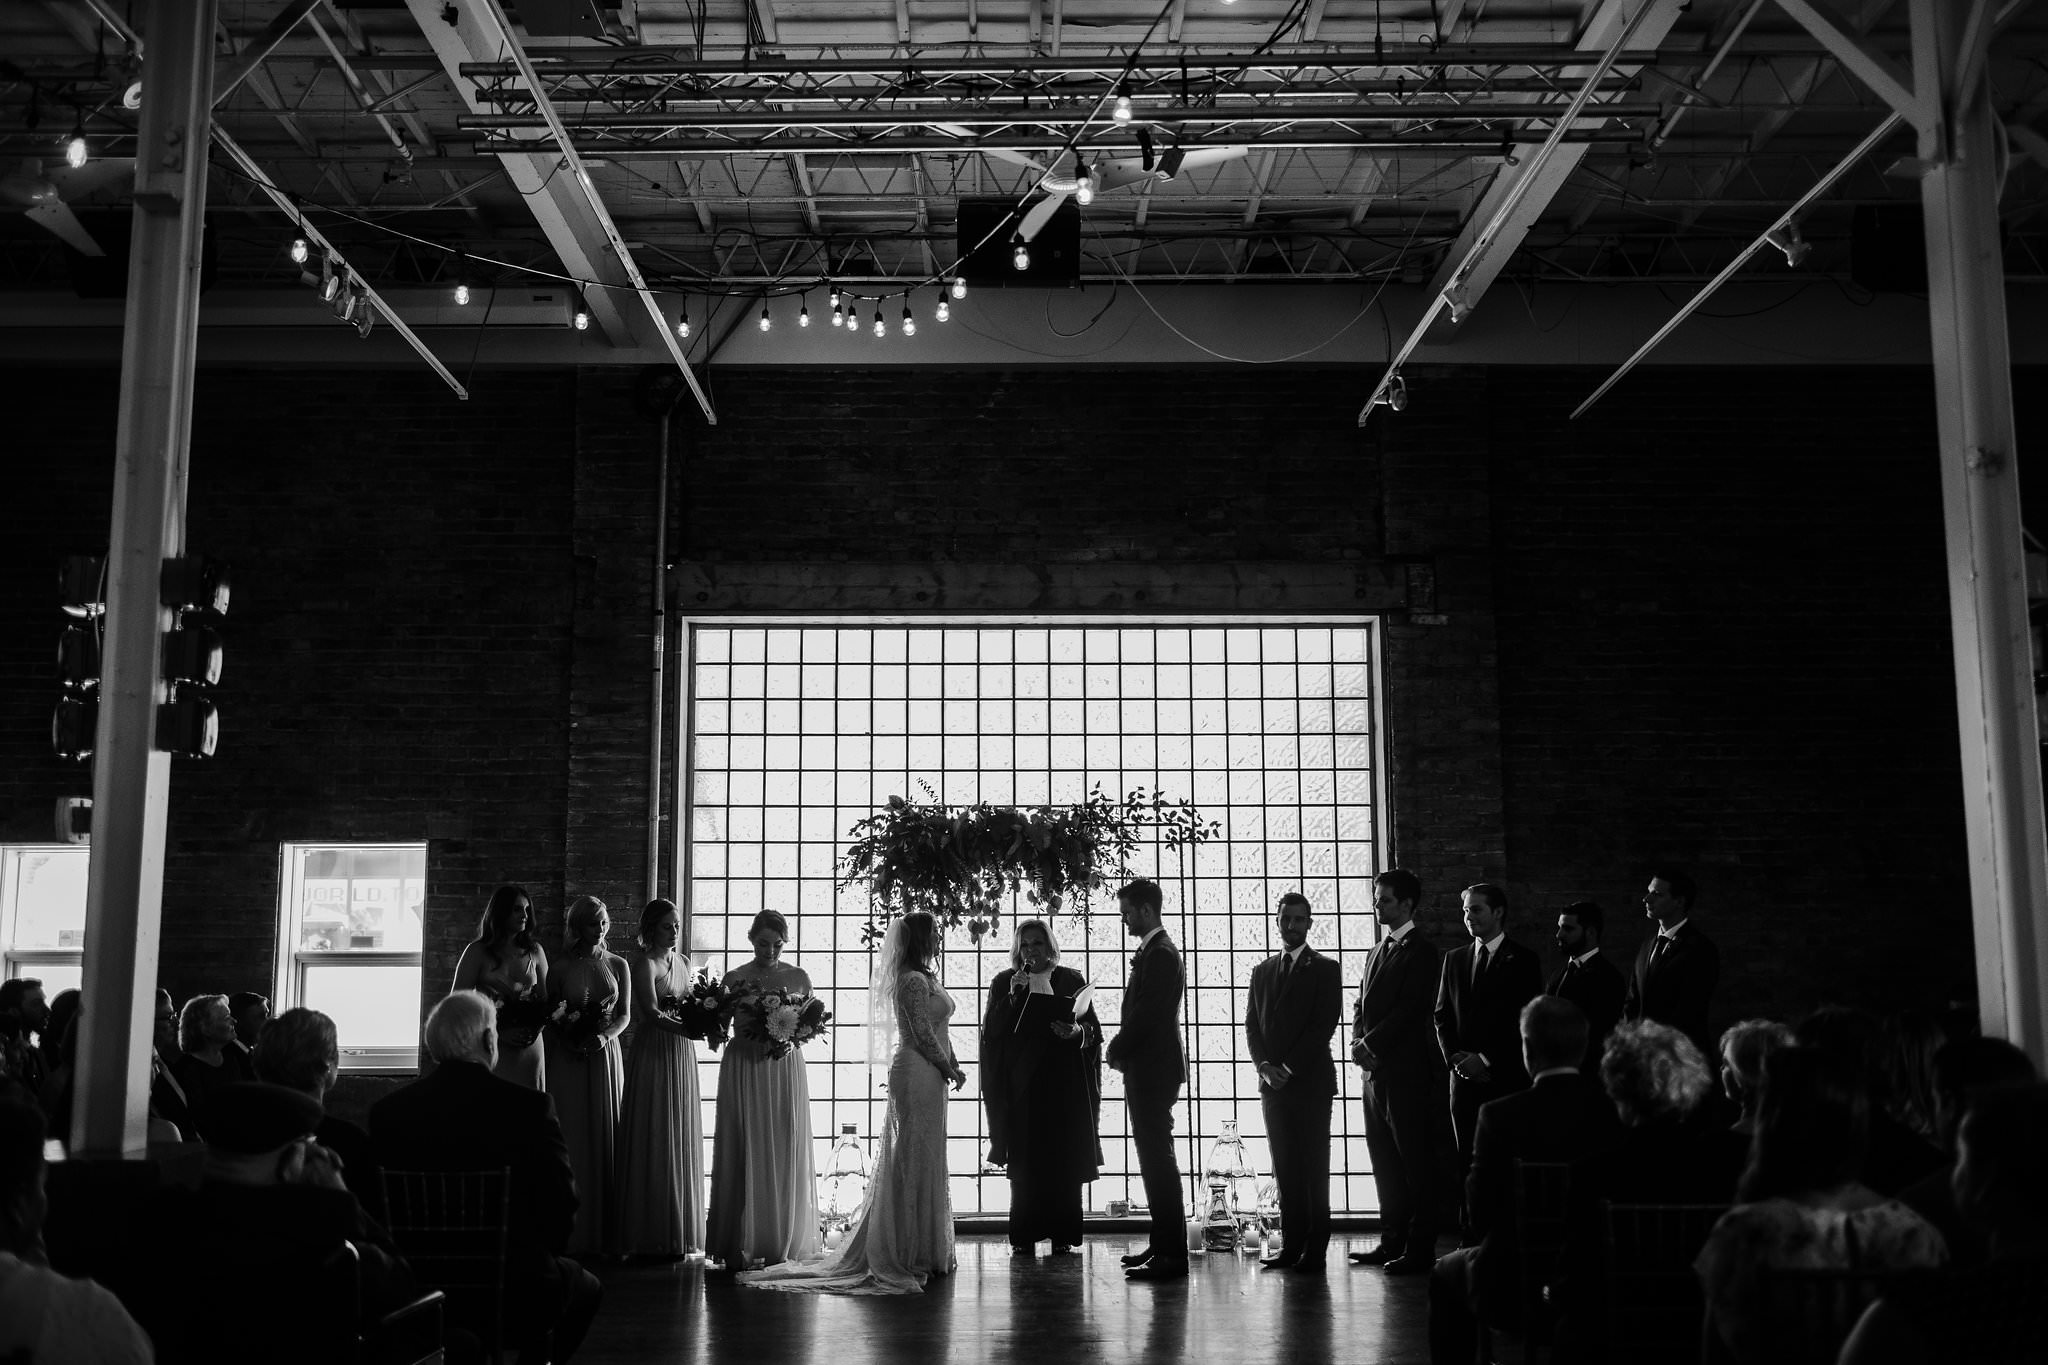 99sudburyweddingphotos 505 - 99 Sudbury Wedding - Glass Factory Wedding